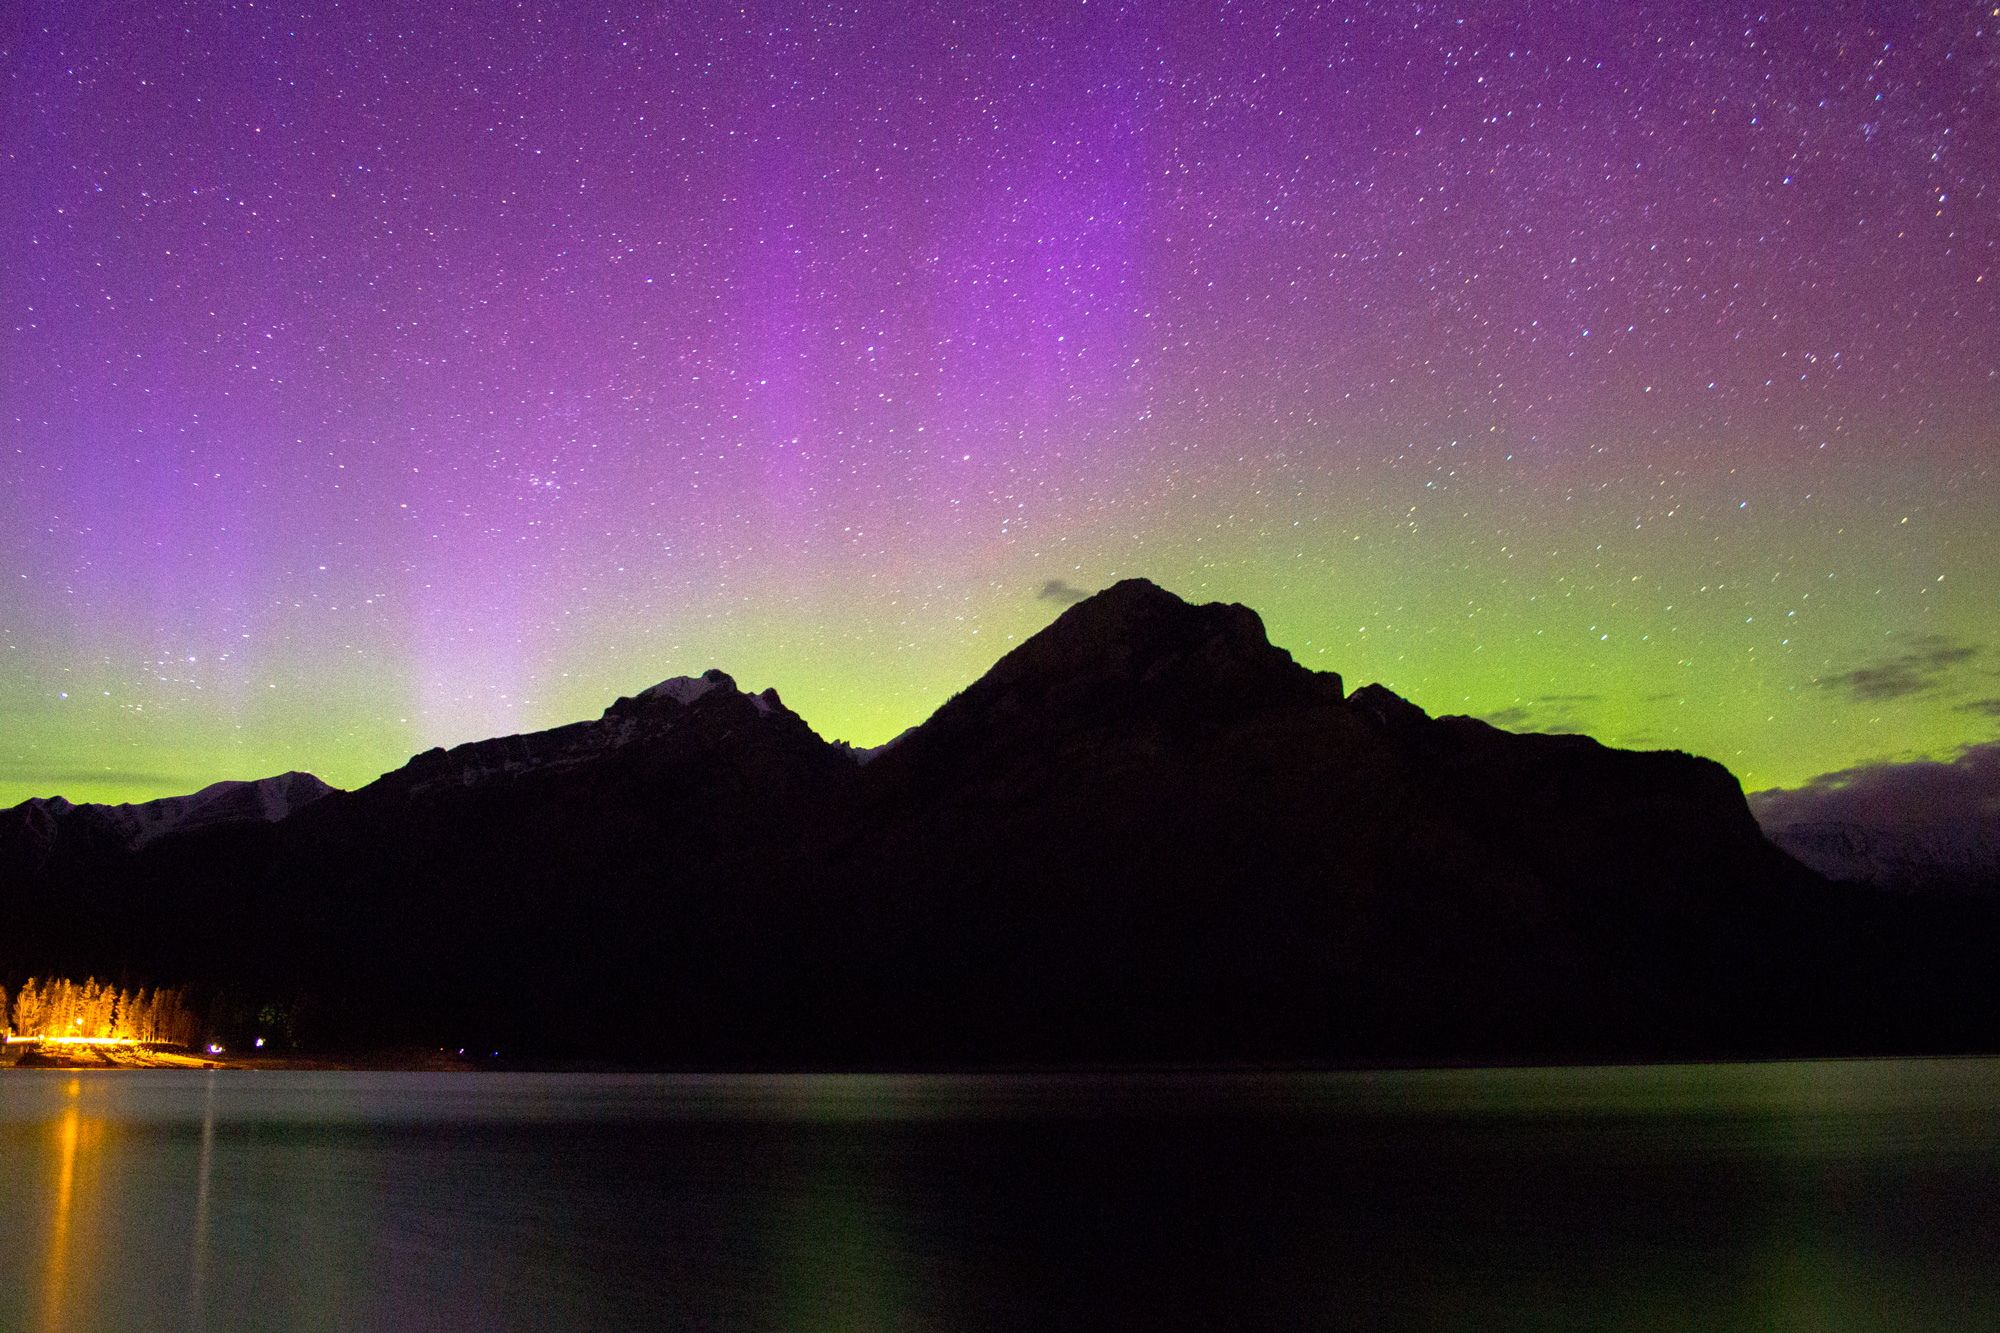 Catching the Northern Lights at Lake Minnewanka is one of the top things to do in Banff all year round